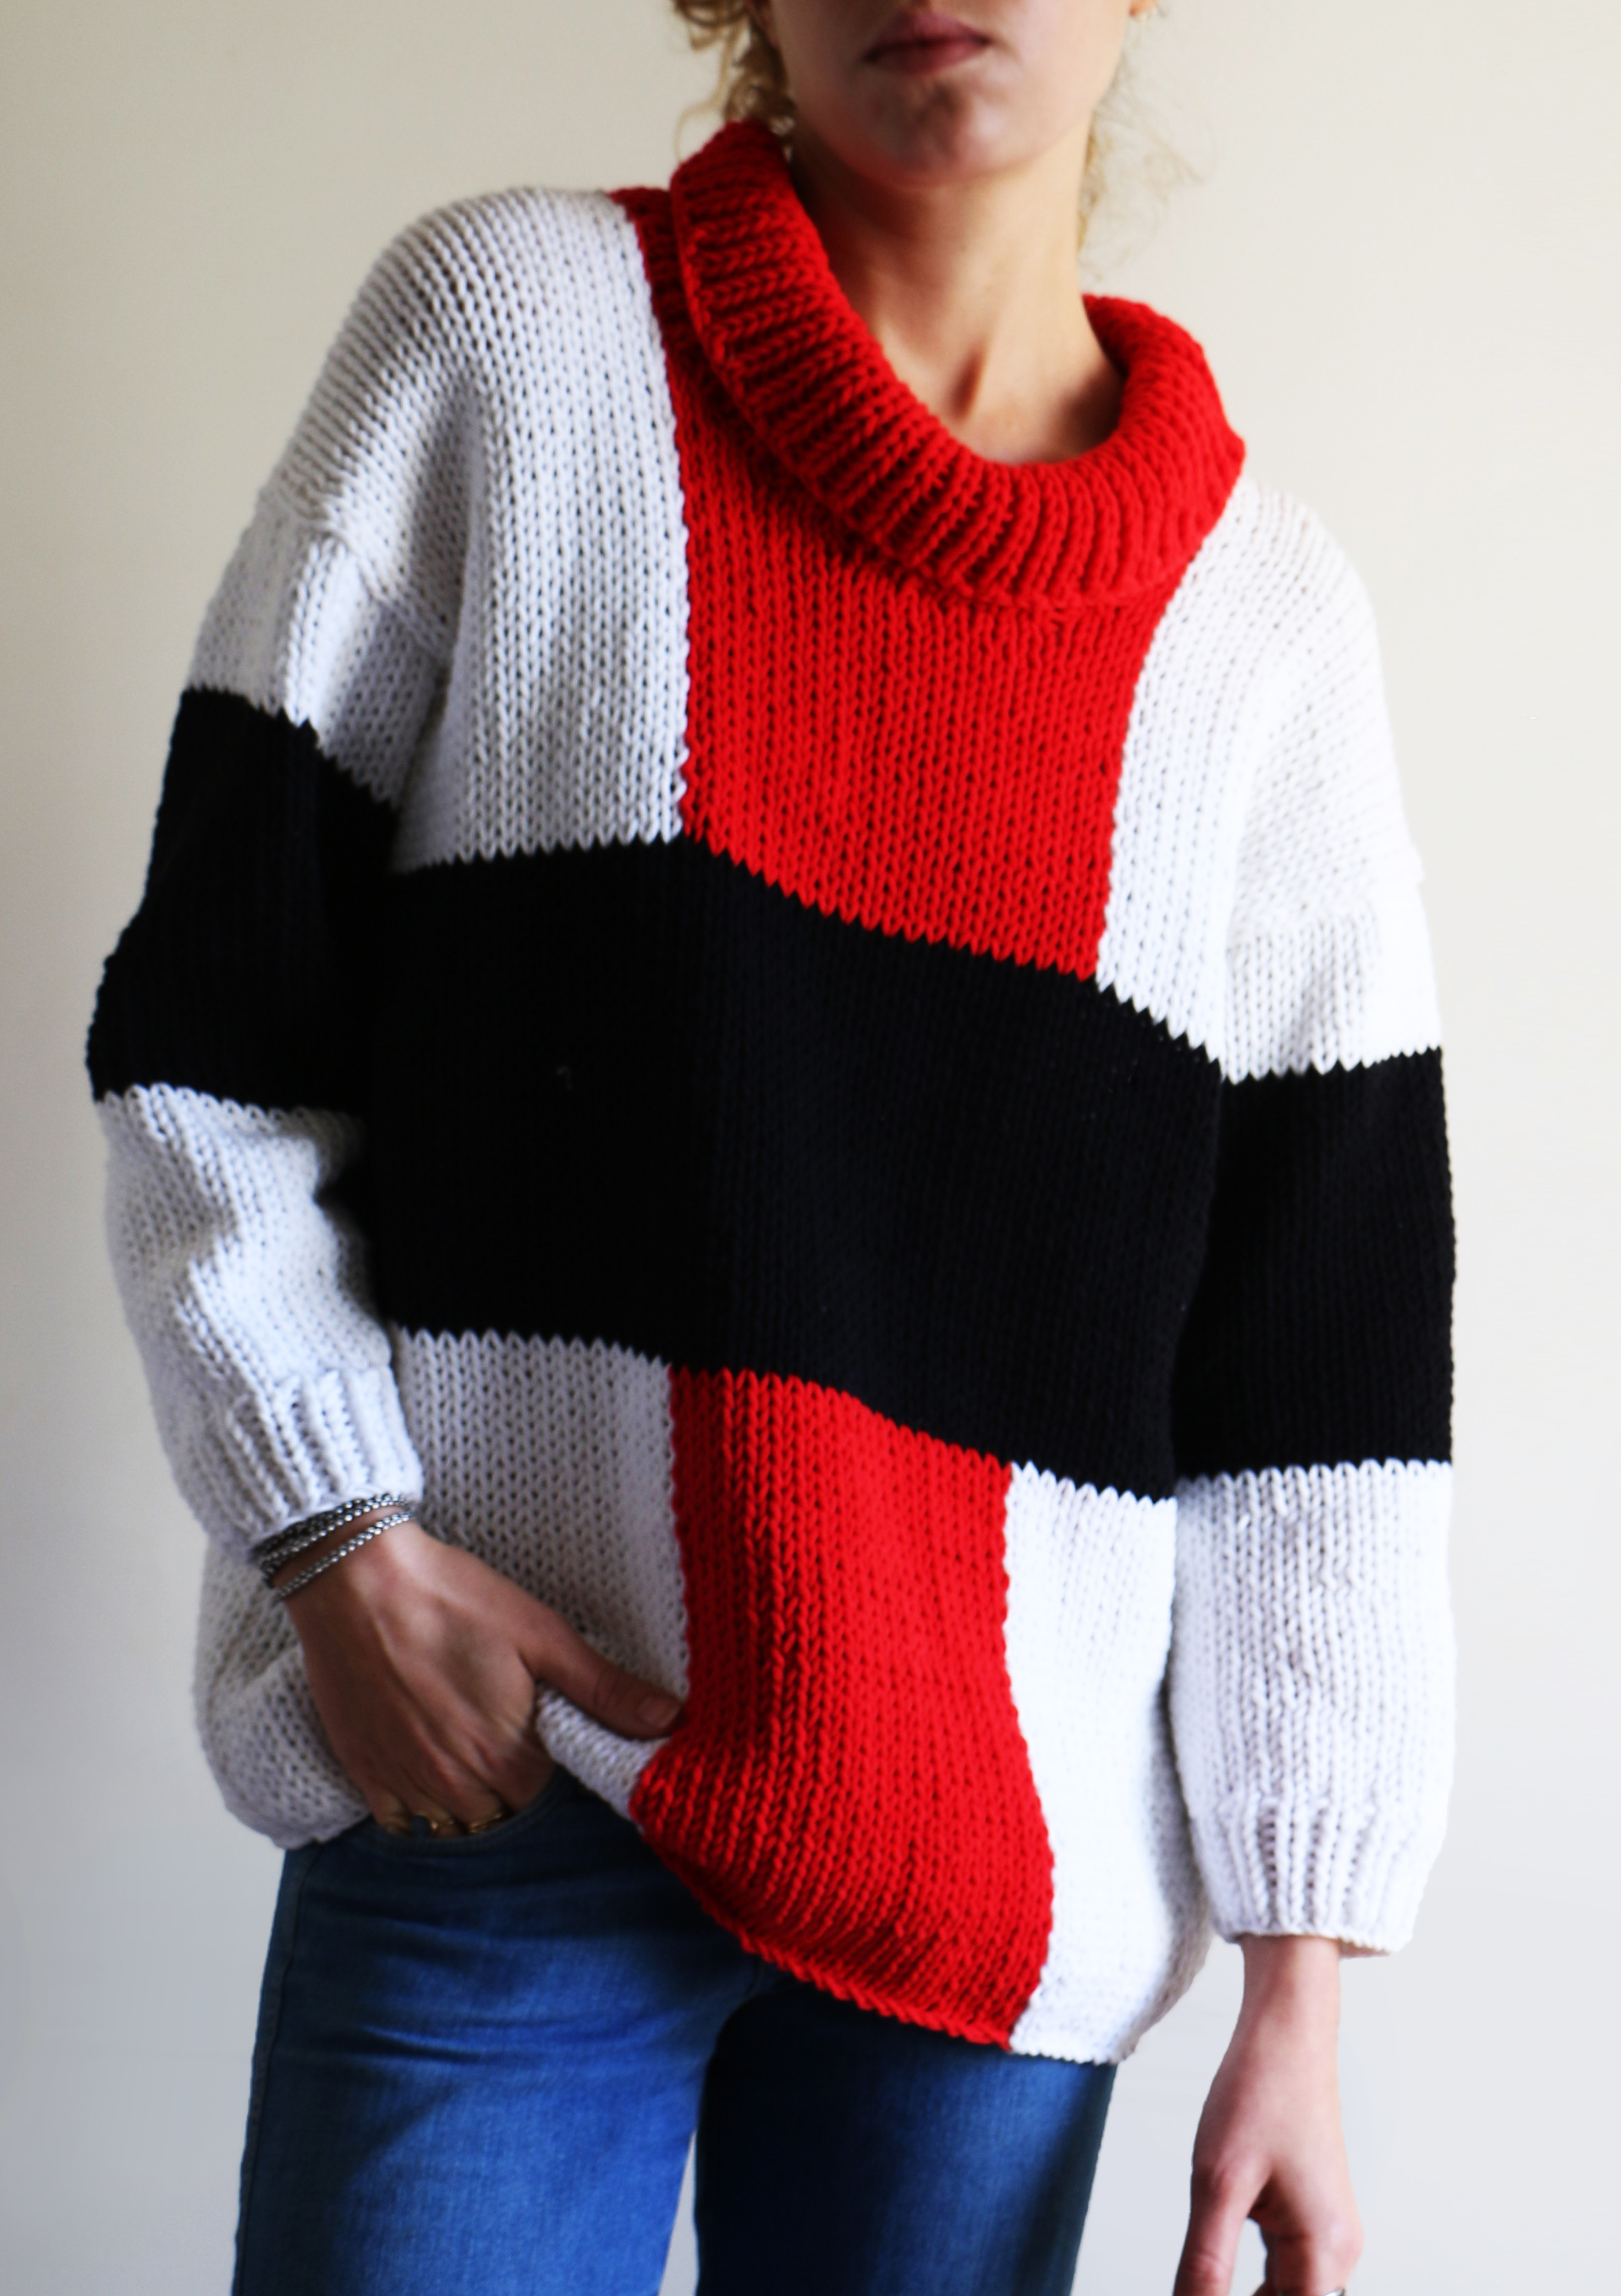 malevitch-sweater-pattern.jpg